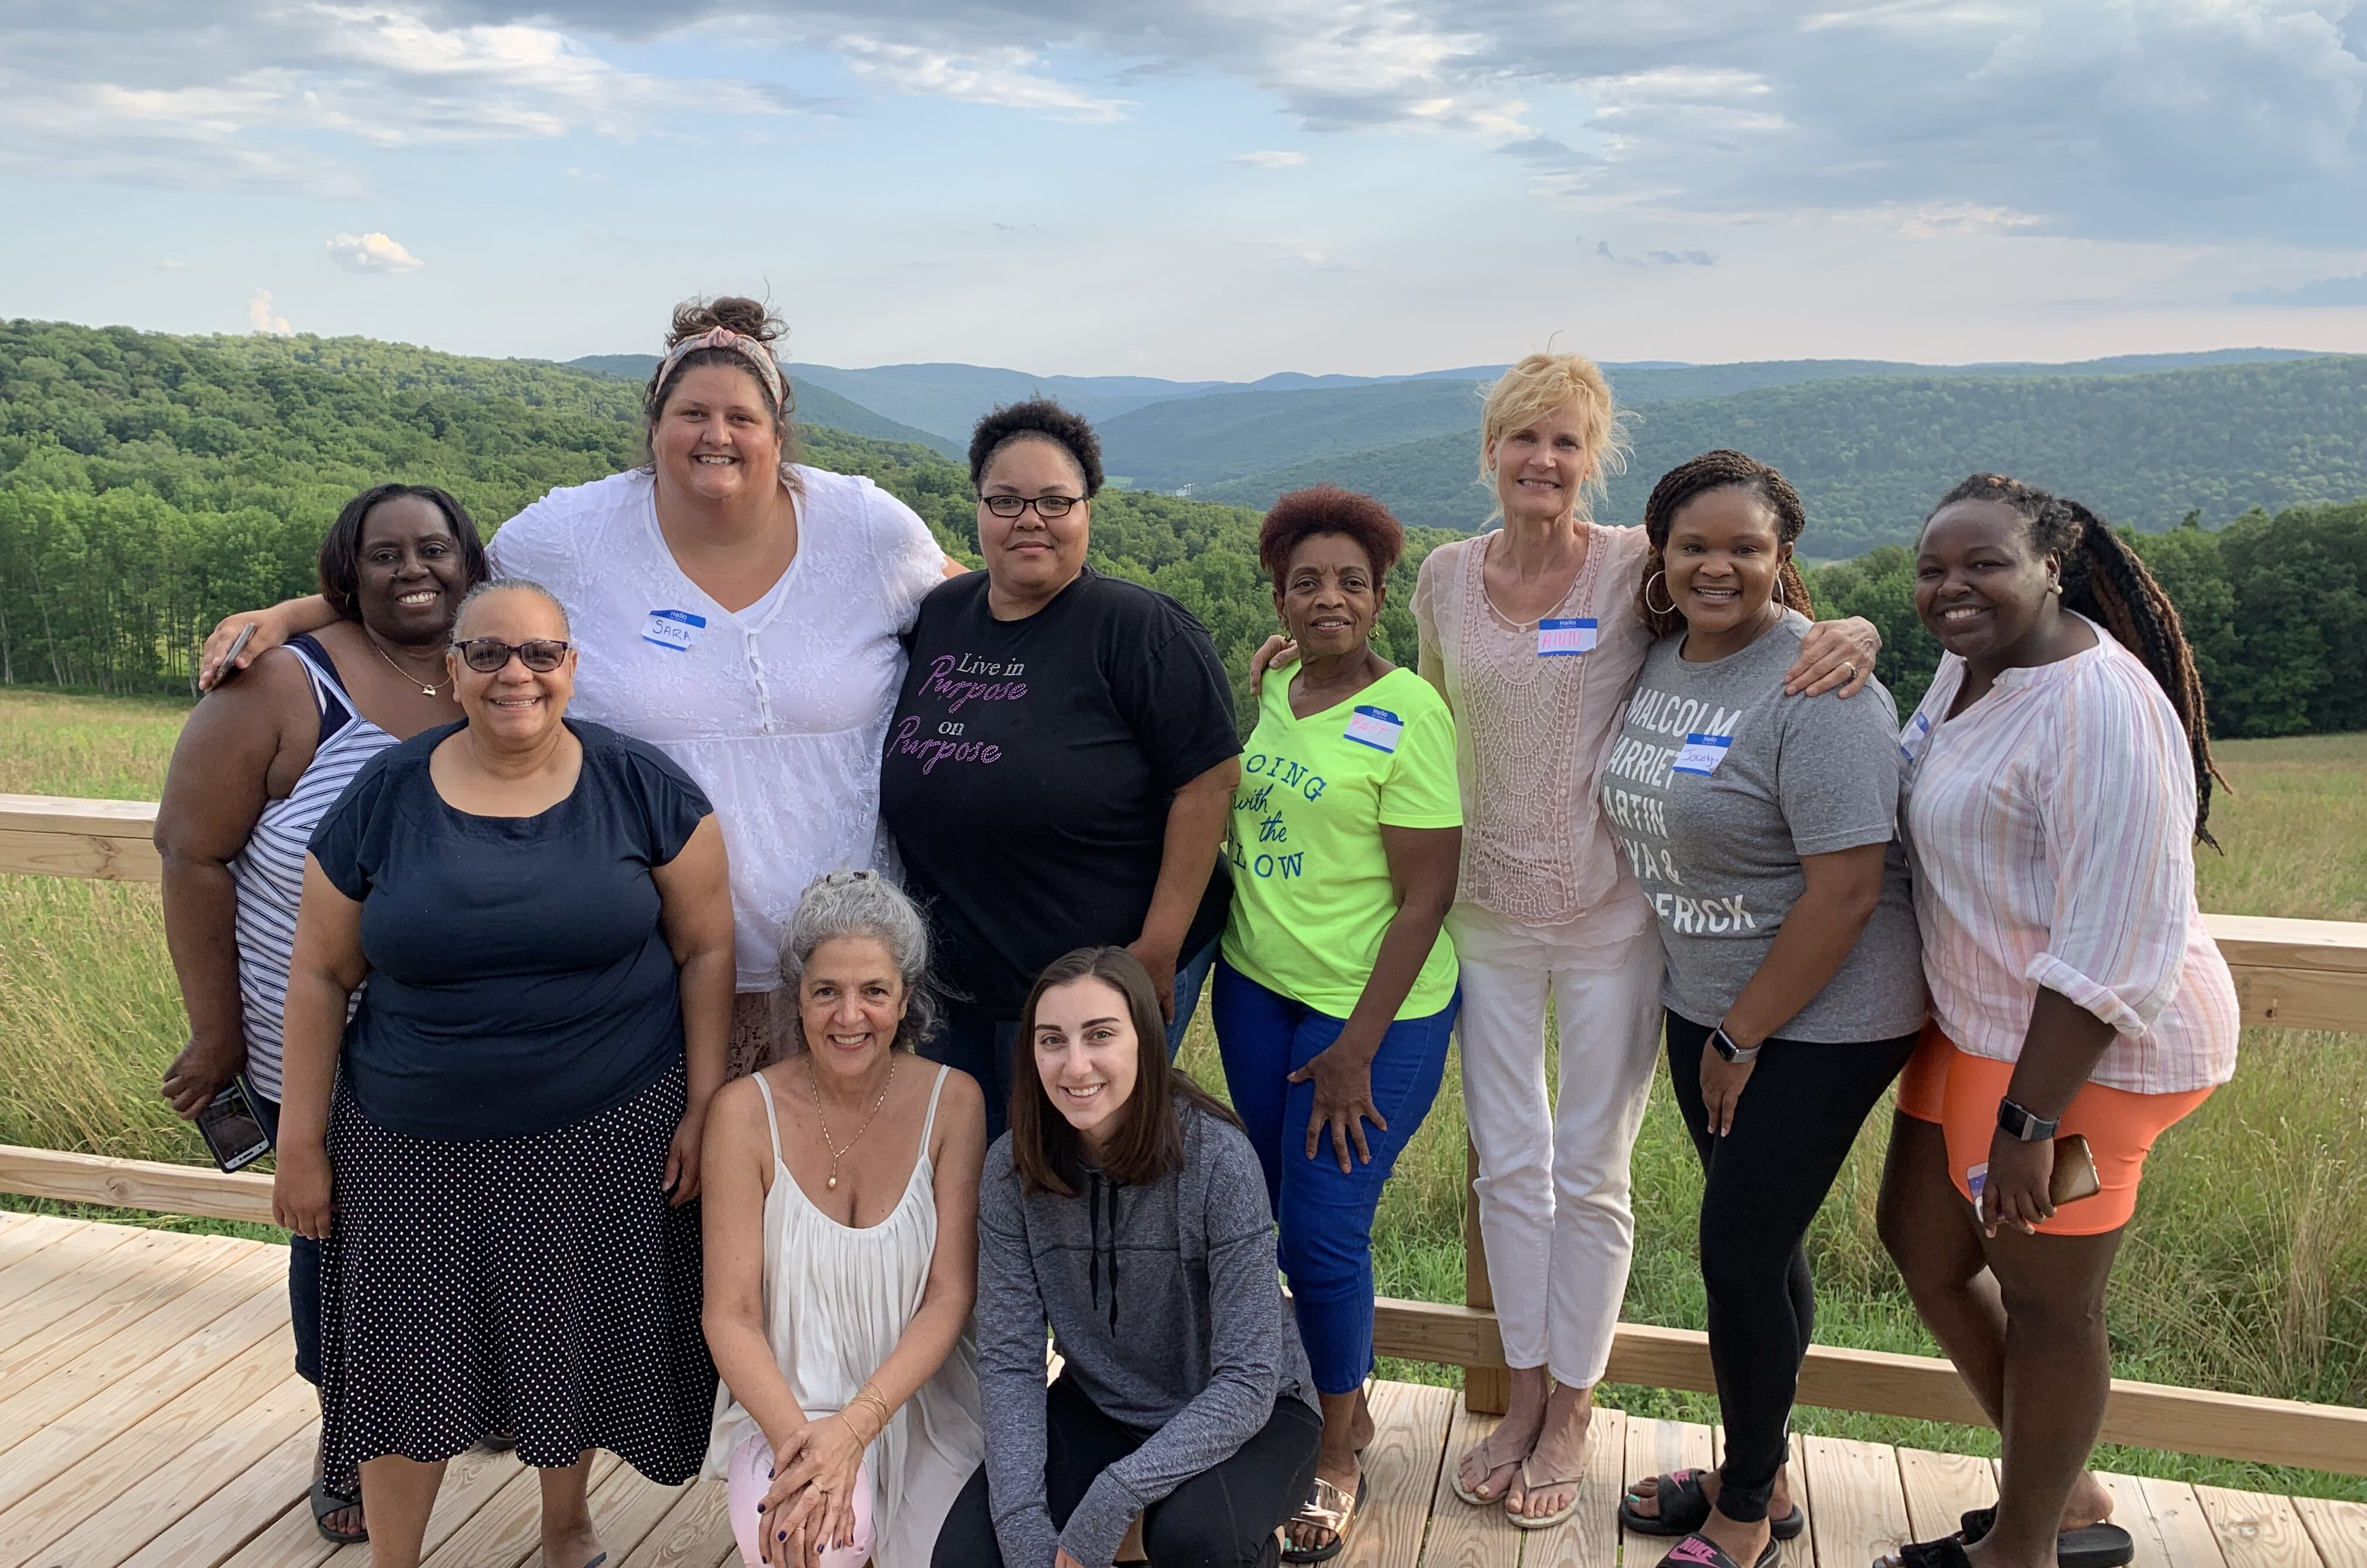 Ann, Claudia, and Imagine Newark women at Uplands